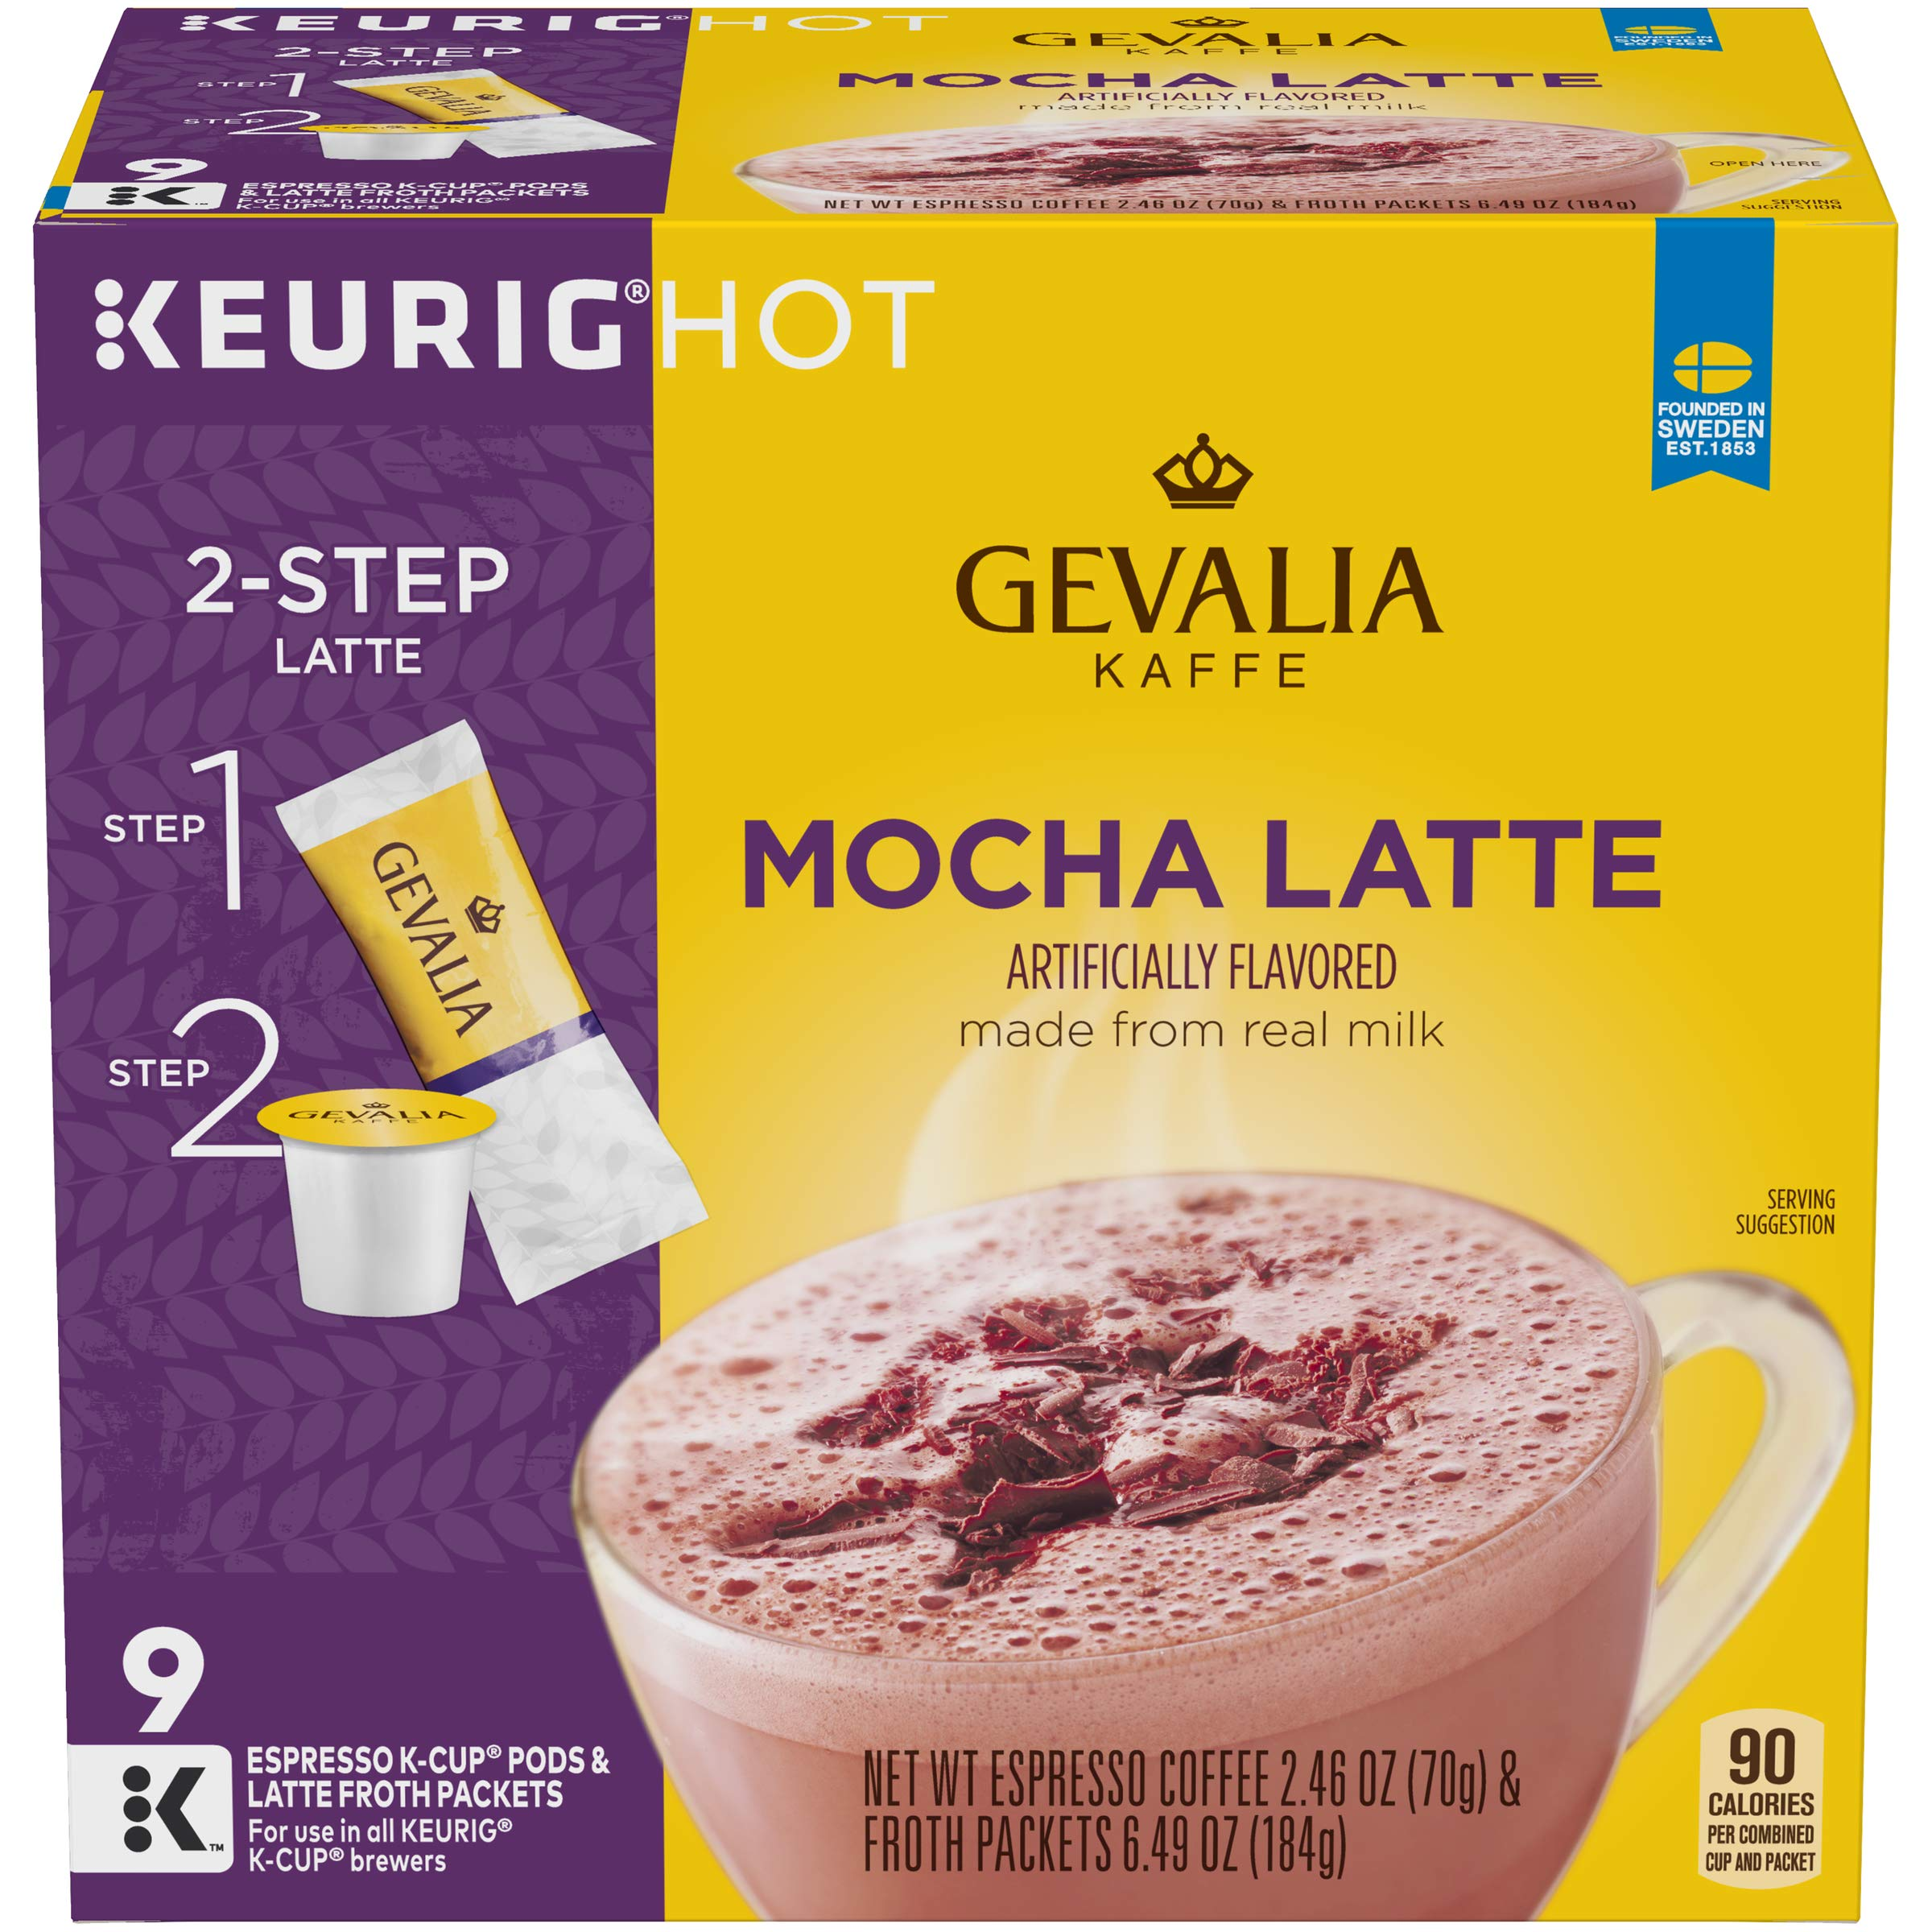 Gevalia Mocha Latte Espresso K-Cup Coffee Pods & Froth Packets (9 Pods and Froth Packets)